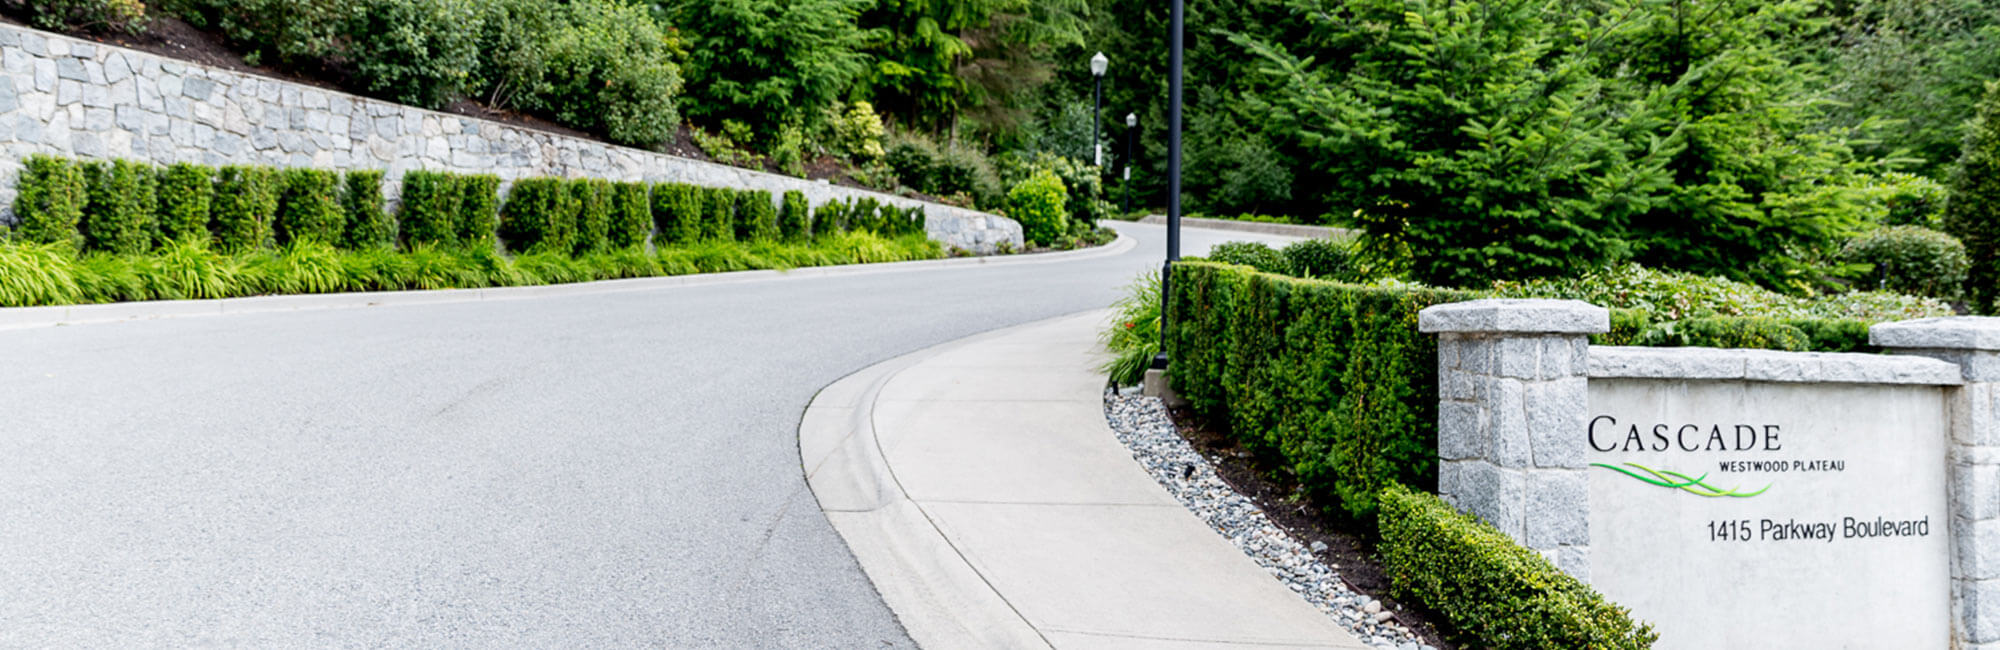 Strata Landscape Management